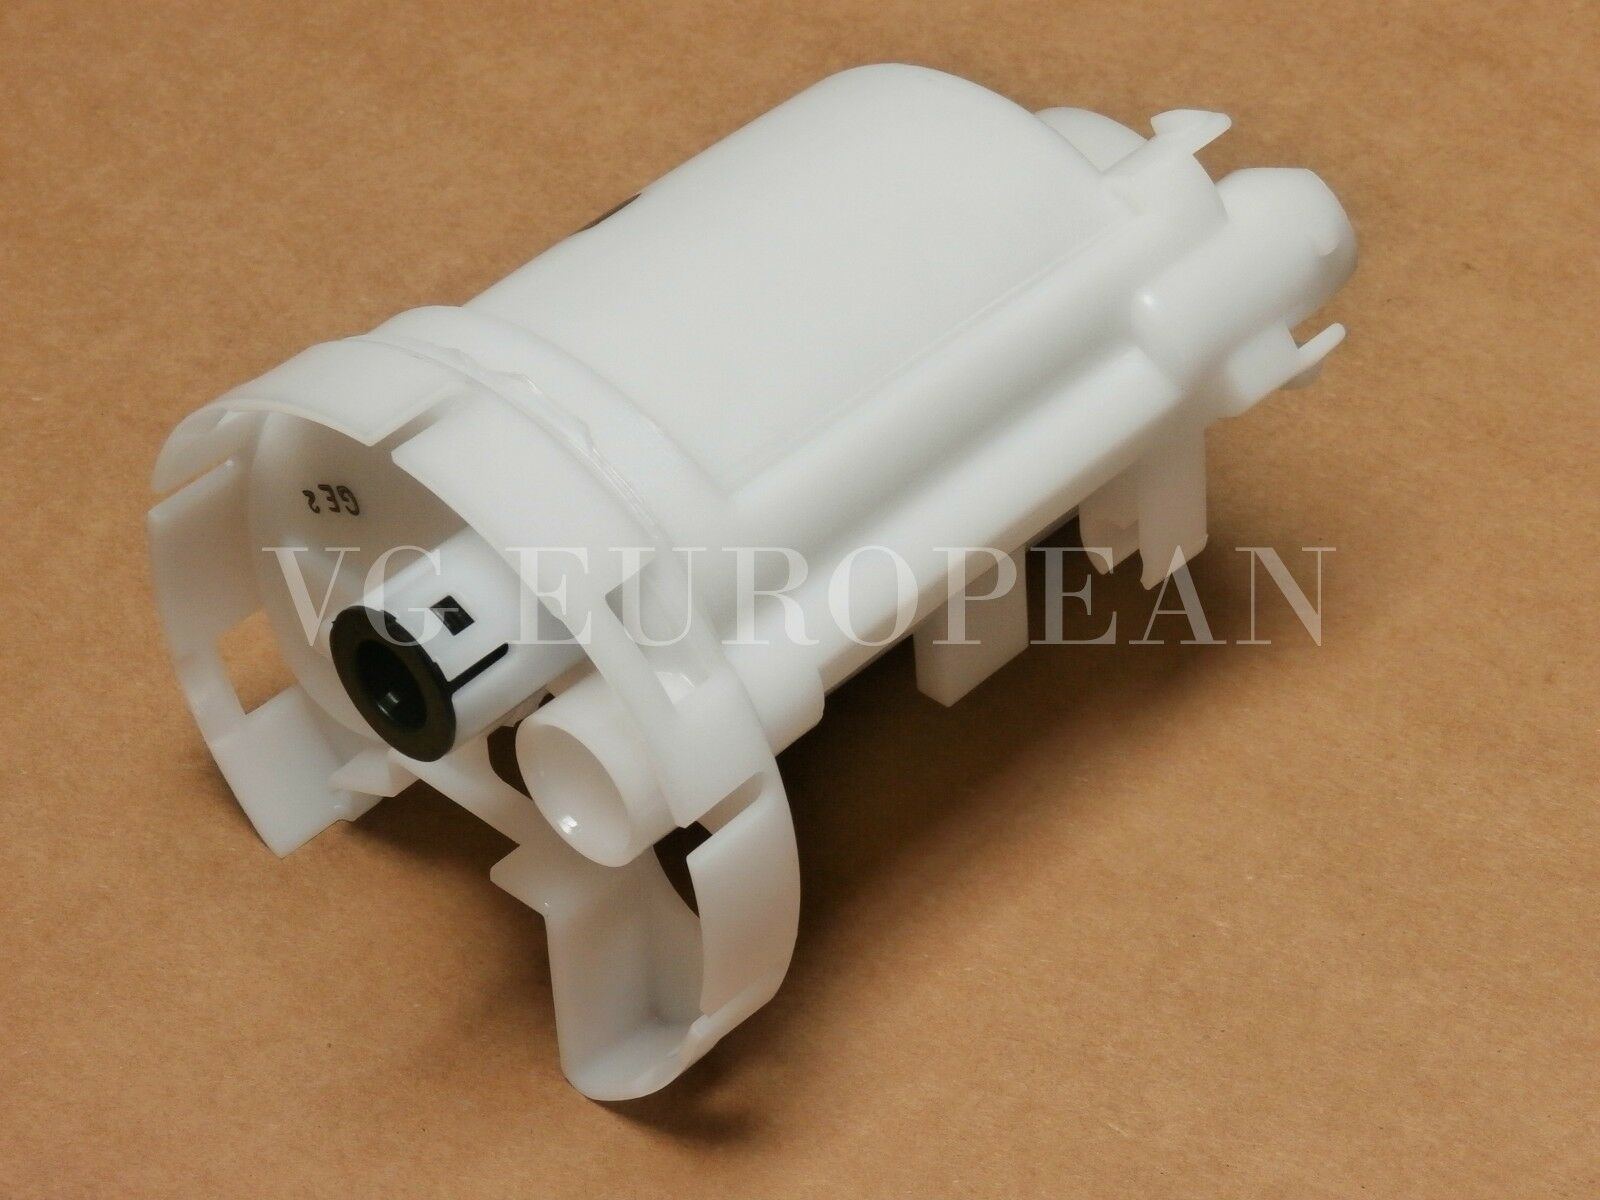 Lexus Genuine IS300 Fuel Filter Assembly 2001-2005 NEW 1 of 2Only 1  available ...